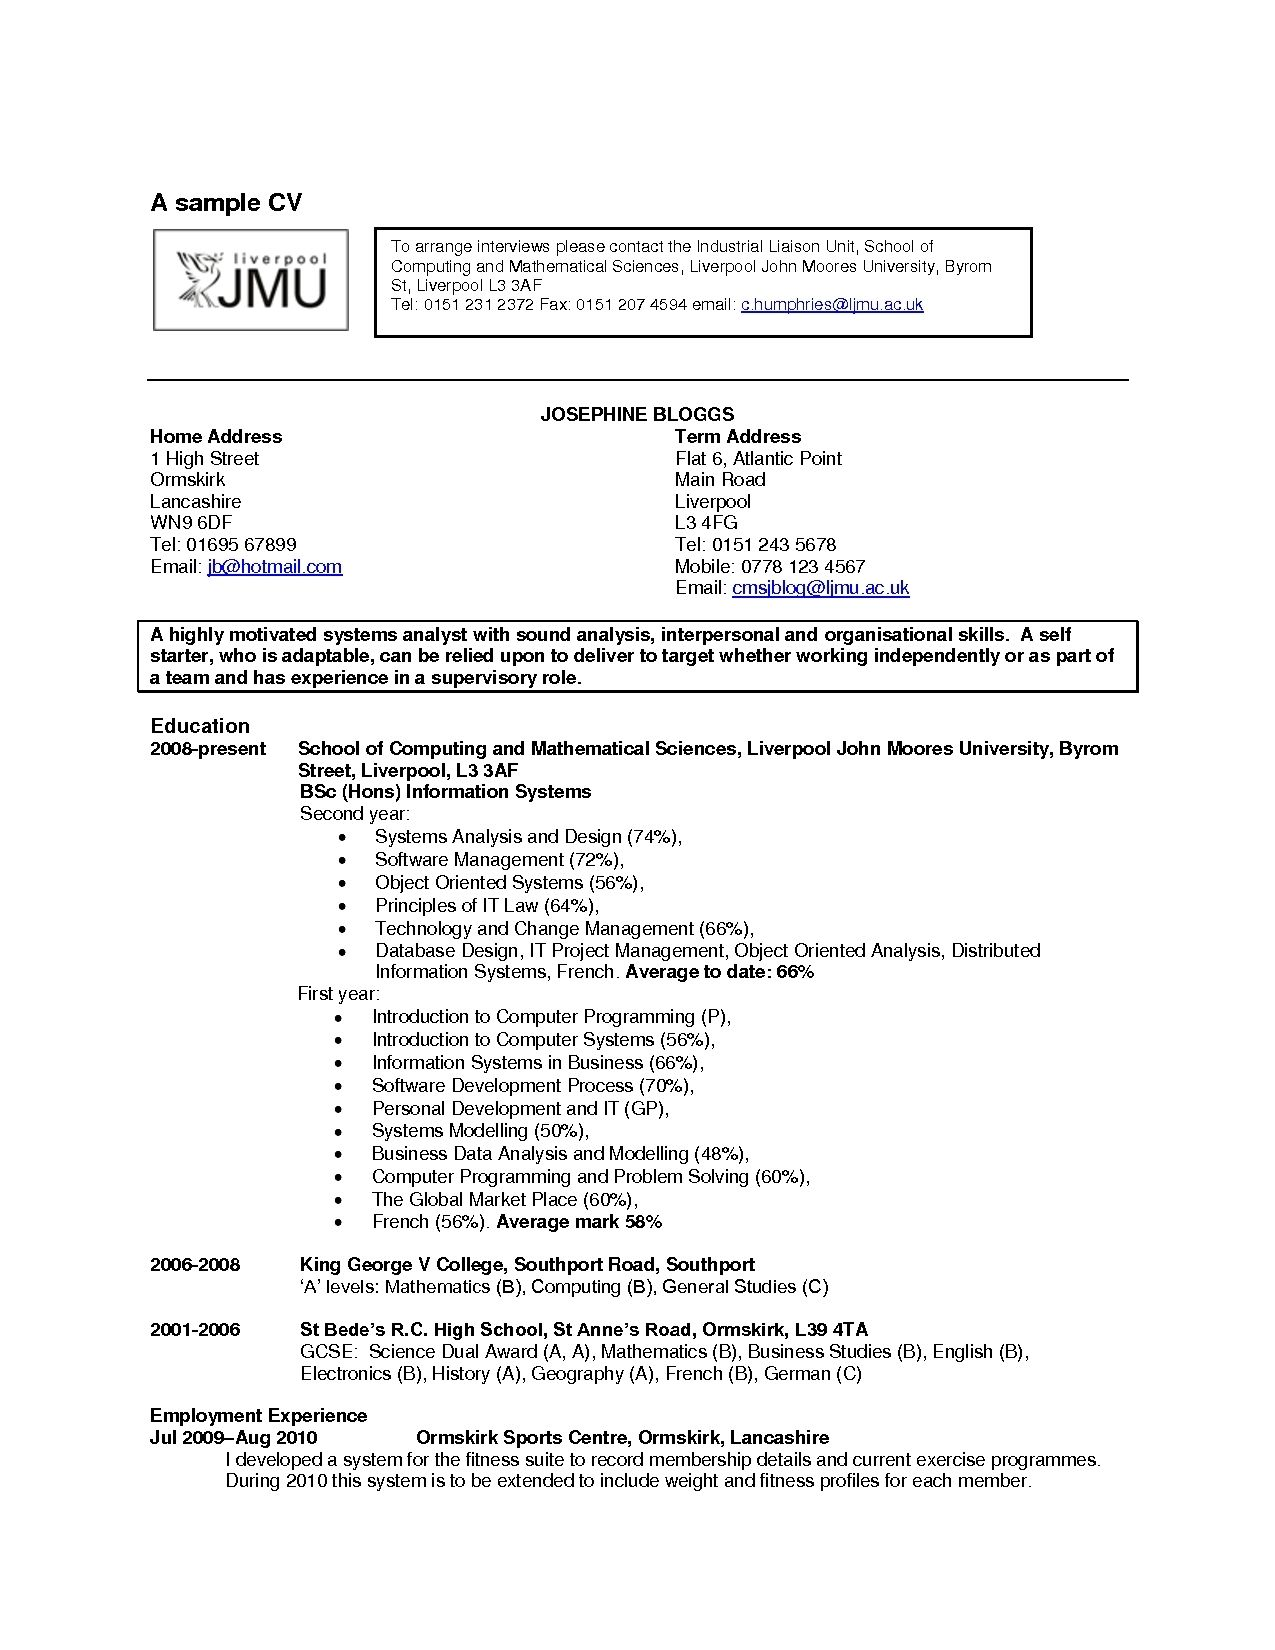 cv template hobbies resume examples and interests good for pet sitter certification Resume Good Hobbies For Resume